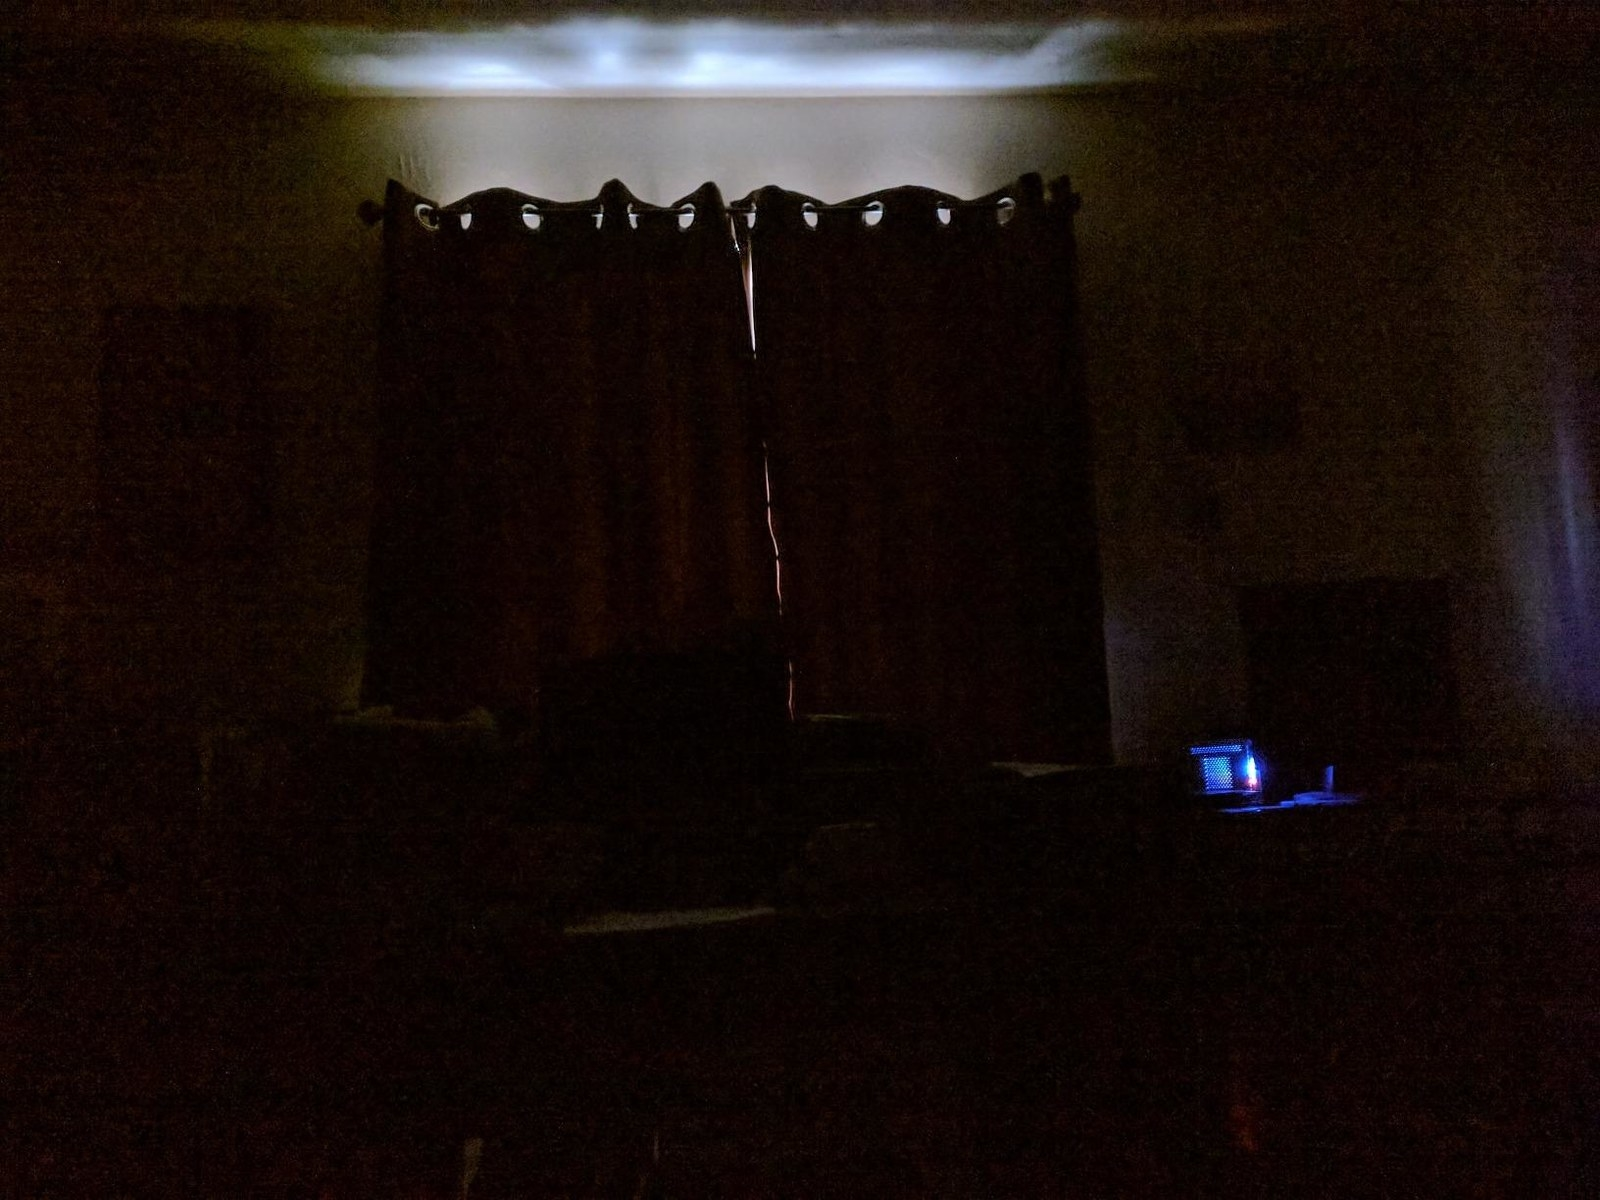 A review image of the curtains blocking out all the daylight, except a teeny strip at the top